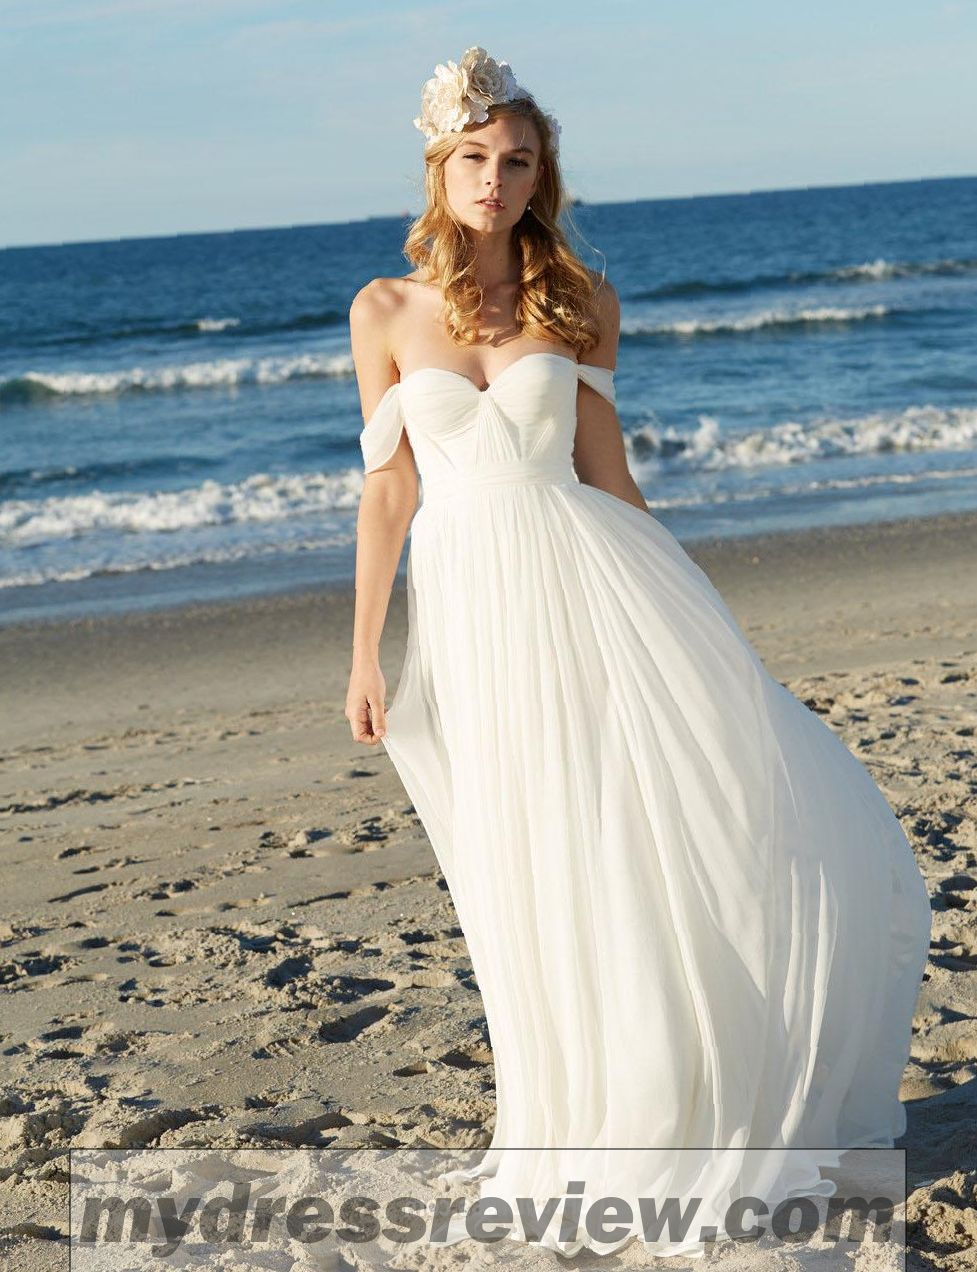 Where to buy white dresses